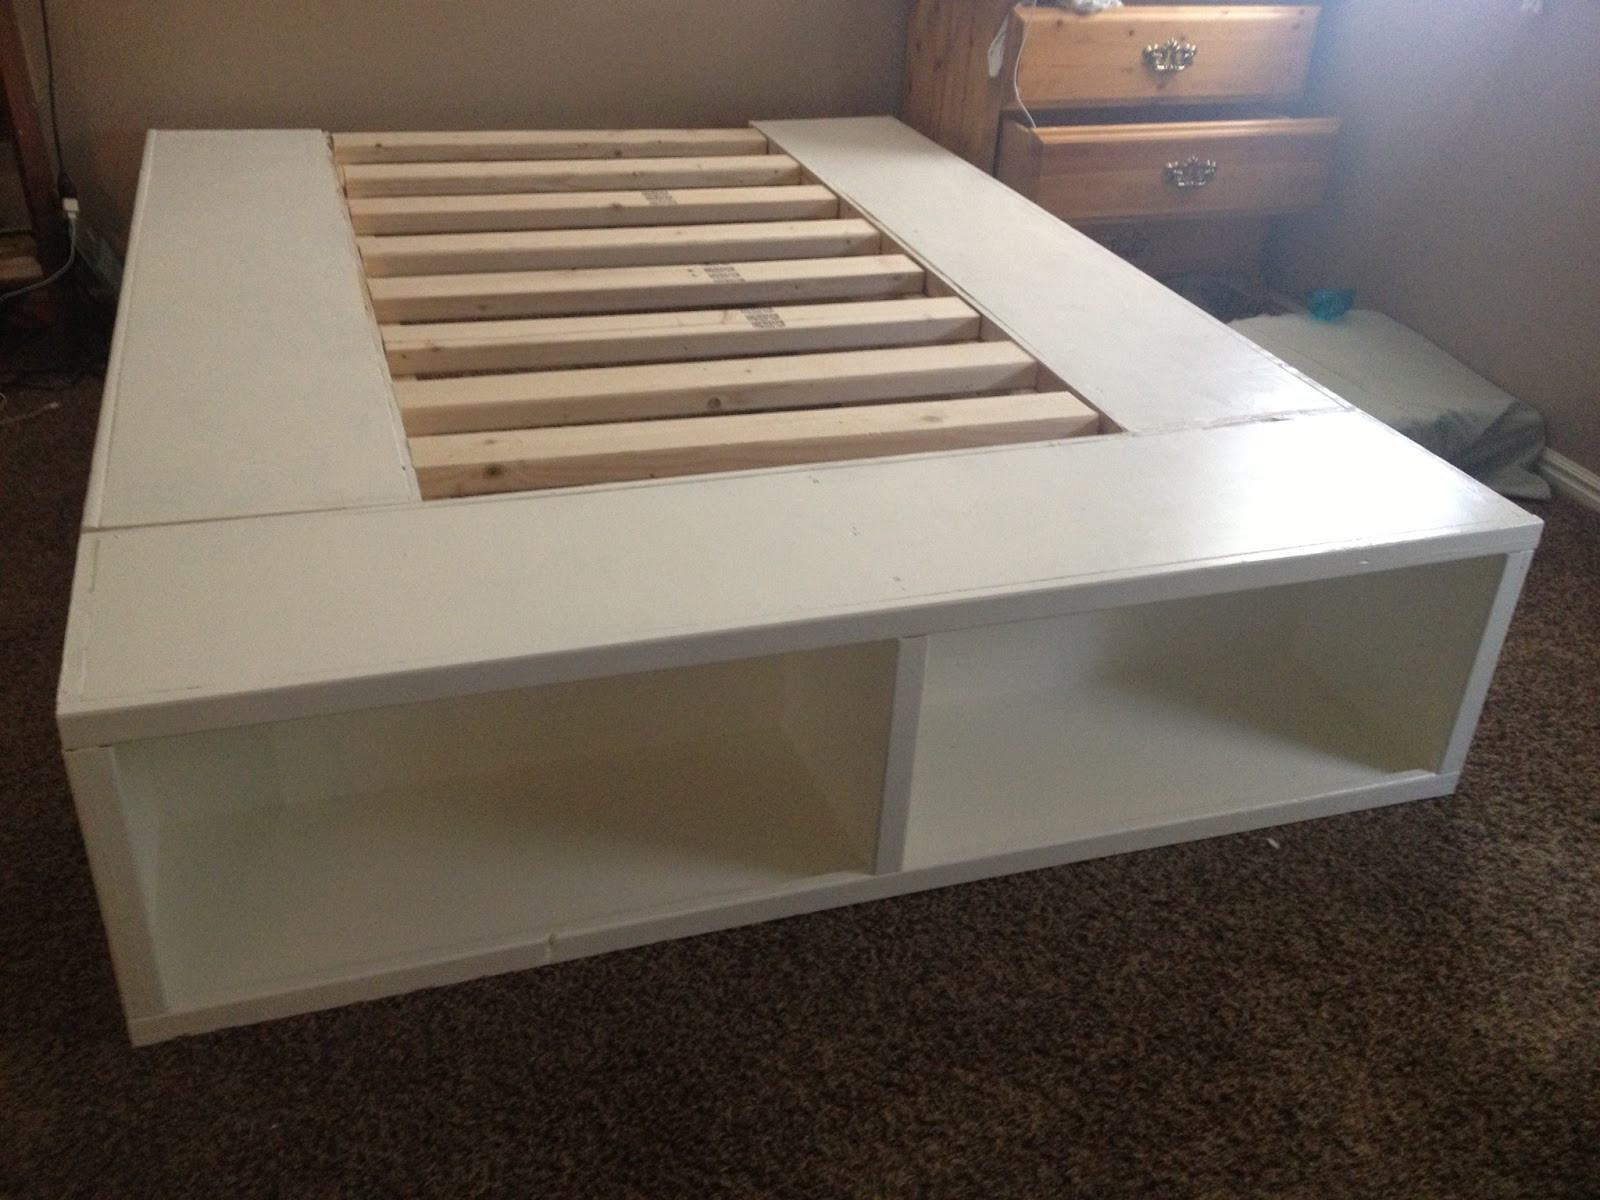 Best ideas about Bed Frame DIY . Save or Pin DIY Storage Bed Now.